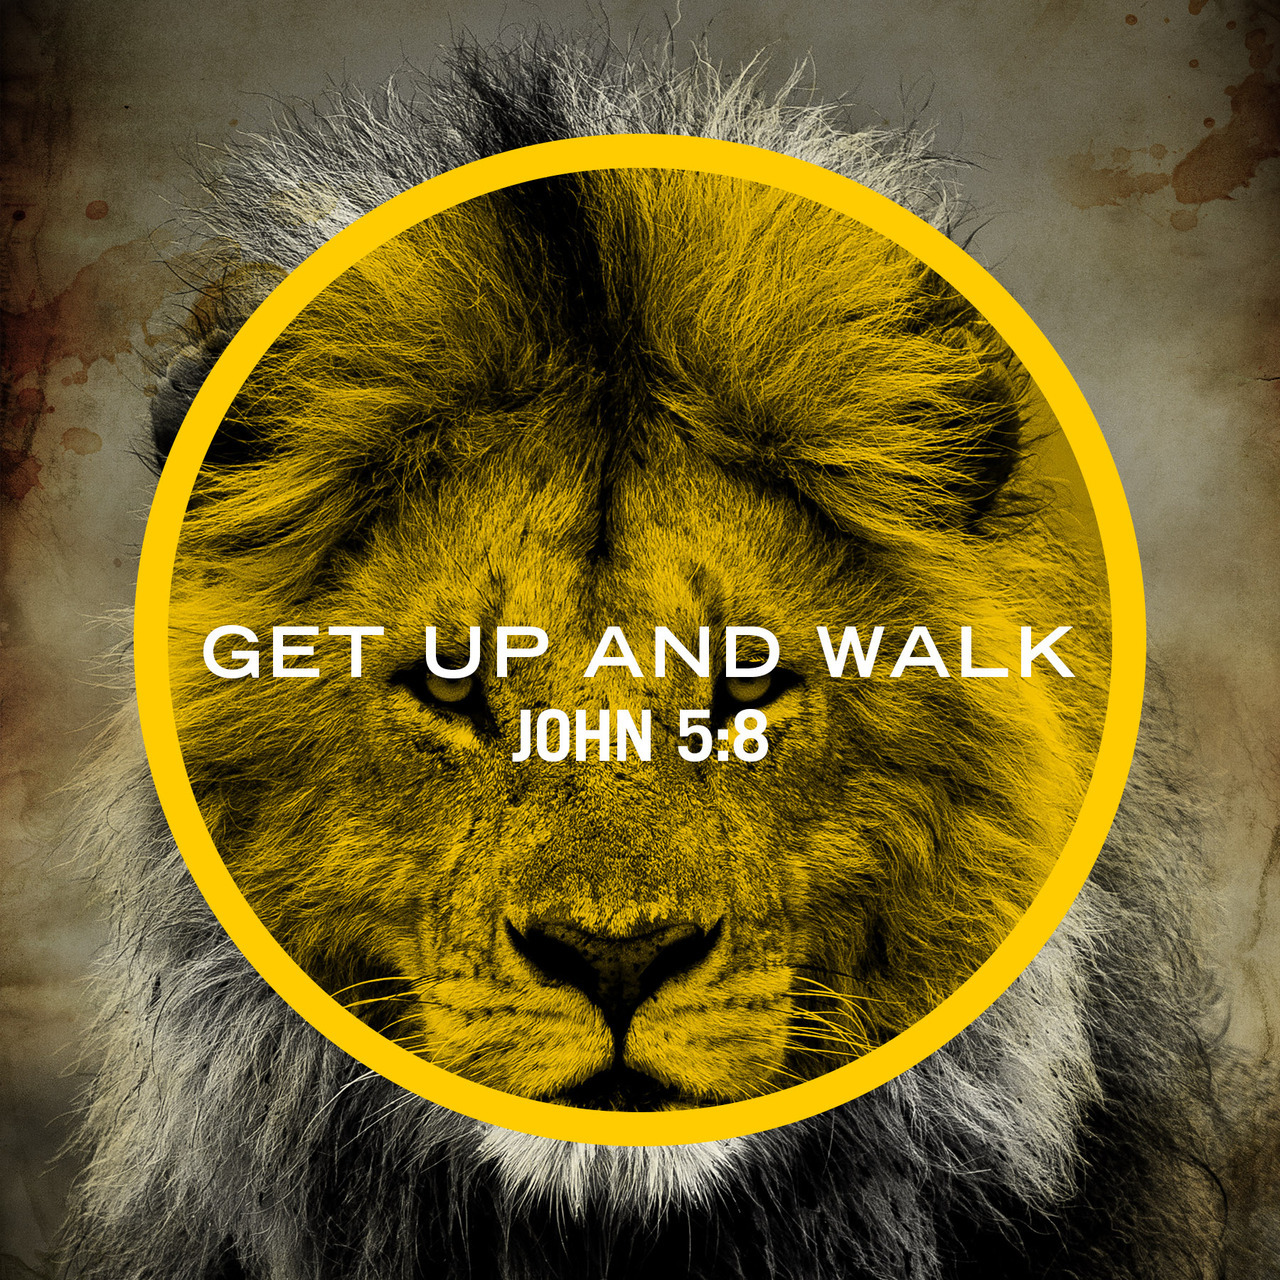 "Then Jesus said to him, ""Get up! Pick up your bed and walk."" (John 5:8) It's time to get up! It's time to stop living life on the ground, it's time to wipe the gravel off your face, and go after your God given destiny. I don't have to tell you that life is hard, I don't have to tell you that life will knock you down, but I will tell you that we serve a God that is bigger than any problems we face, we serve a God that will give us the strength we need to overcome the struggles of life. In this story Jesus came to a man who had been in the same position for years and had given up on life. Jesus asked him a simple question ""Do you want to get well?"" We have to make a decision. We have to get up and say ""enough is enough, I'm better than this, I am a Child of God, I am more than a conqueror, and It's time for me to get up and fight with every fiber of my being!"" When you have this attitude not only will you overcome your difficulties, but God will open up new doors, show you his favor, and bring your dreams to pass. Pick up your bed and Walk!!"